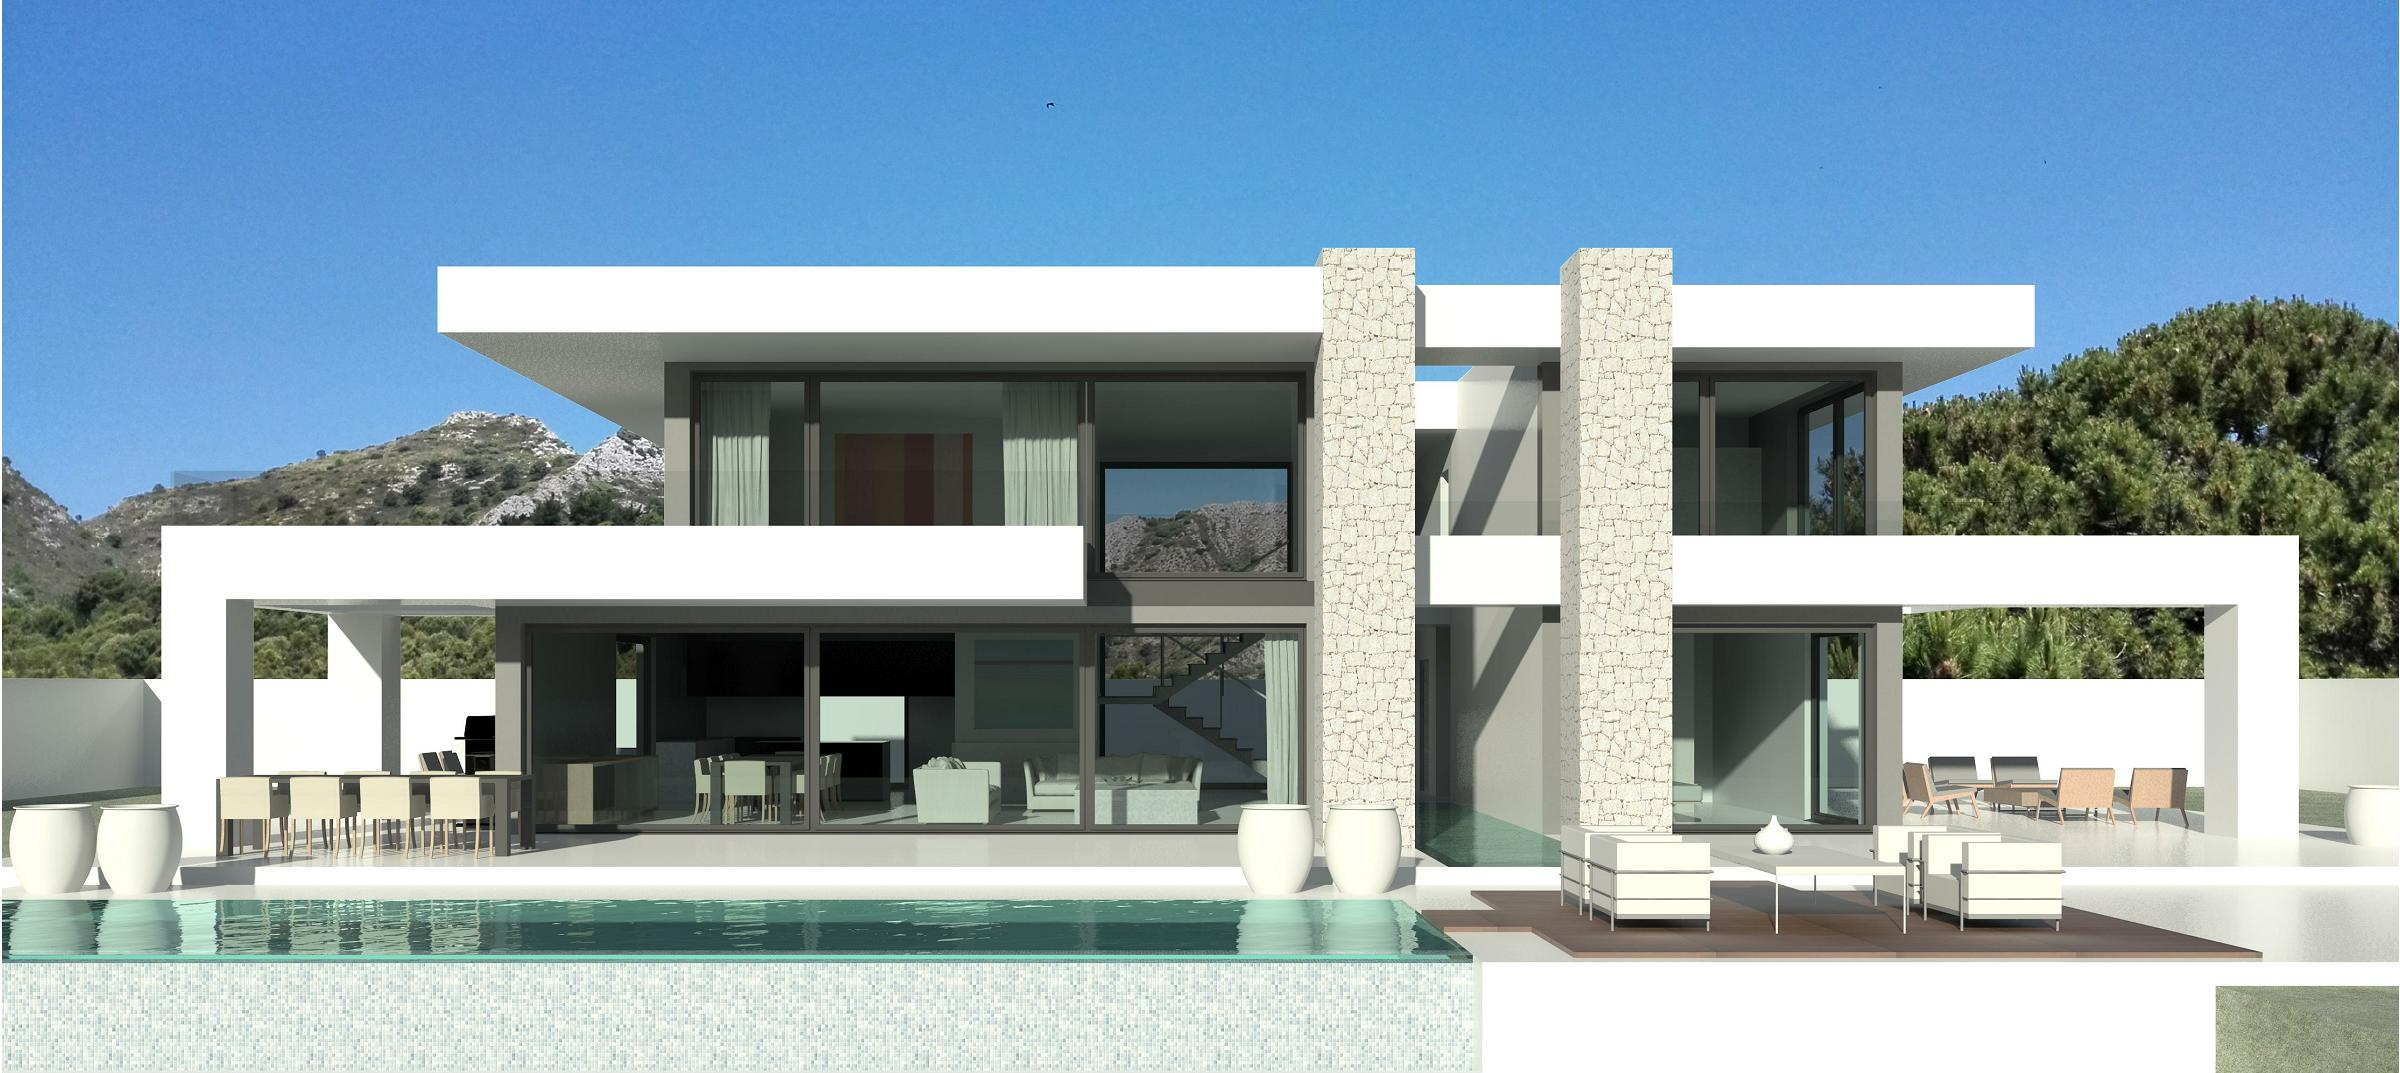 sculptural designer turnkey villa in the 5* Villa Padierna Golf Resort, Marbella